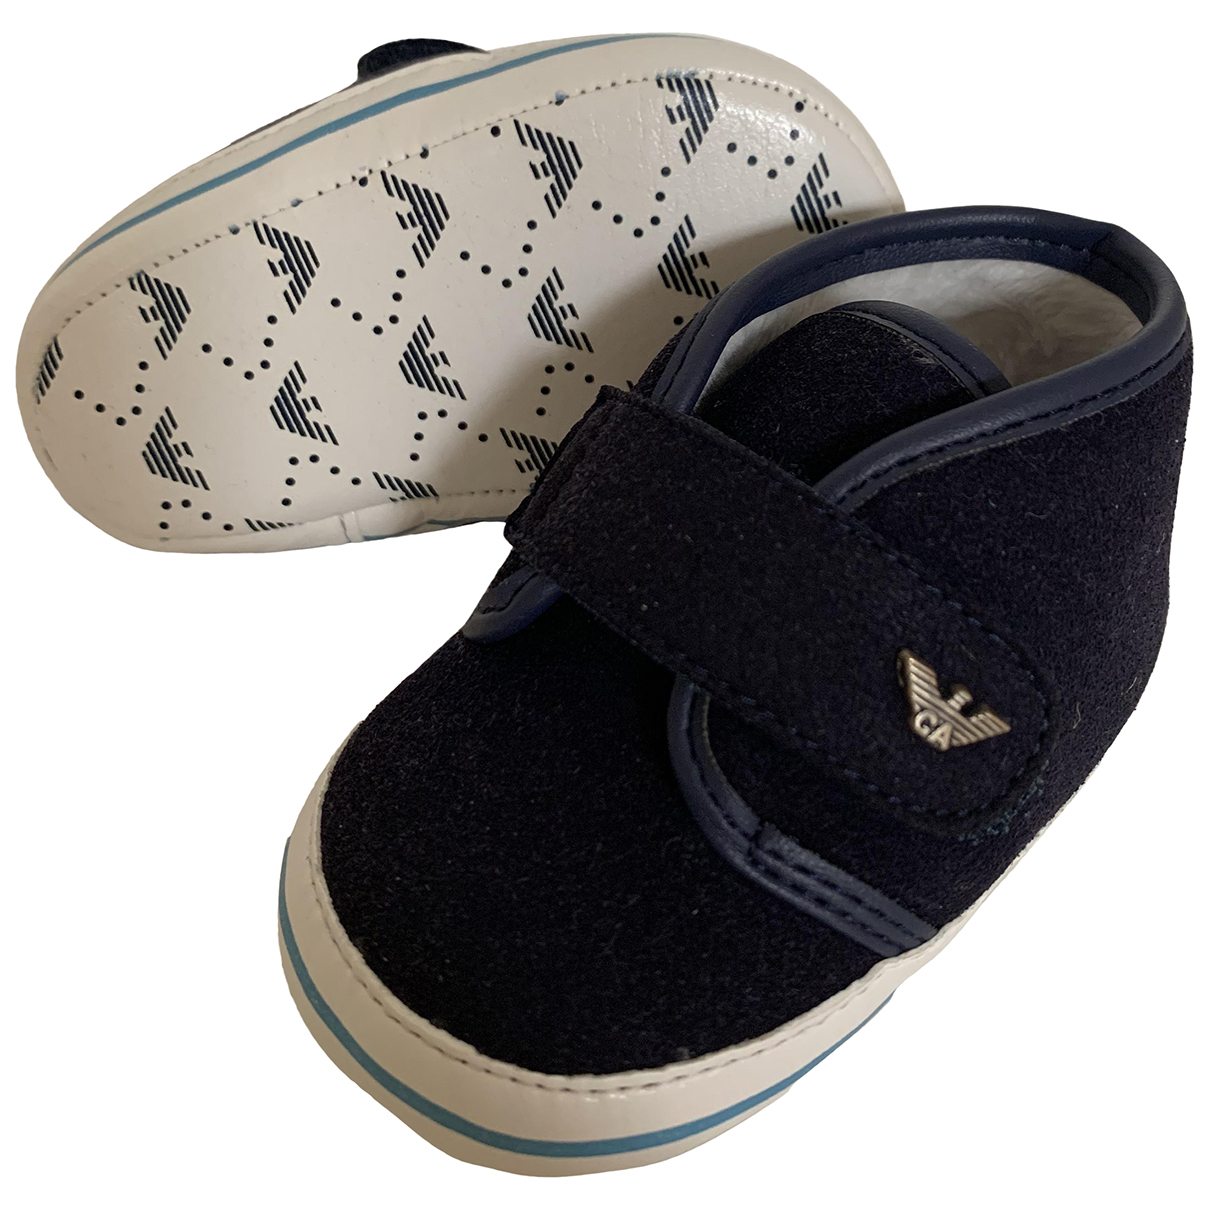 Armani Baby N Blue Suede First shoes for Kids 17 FR